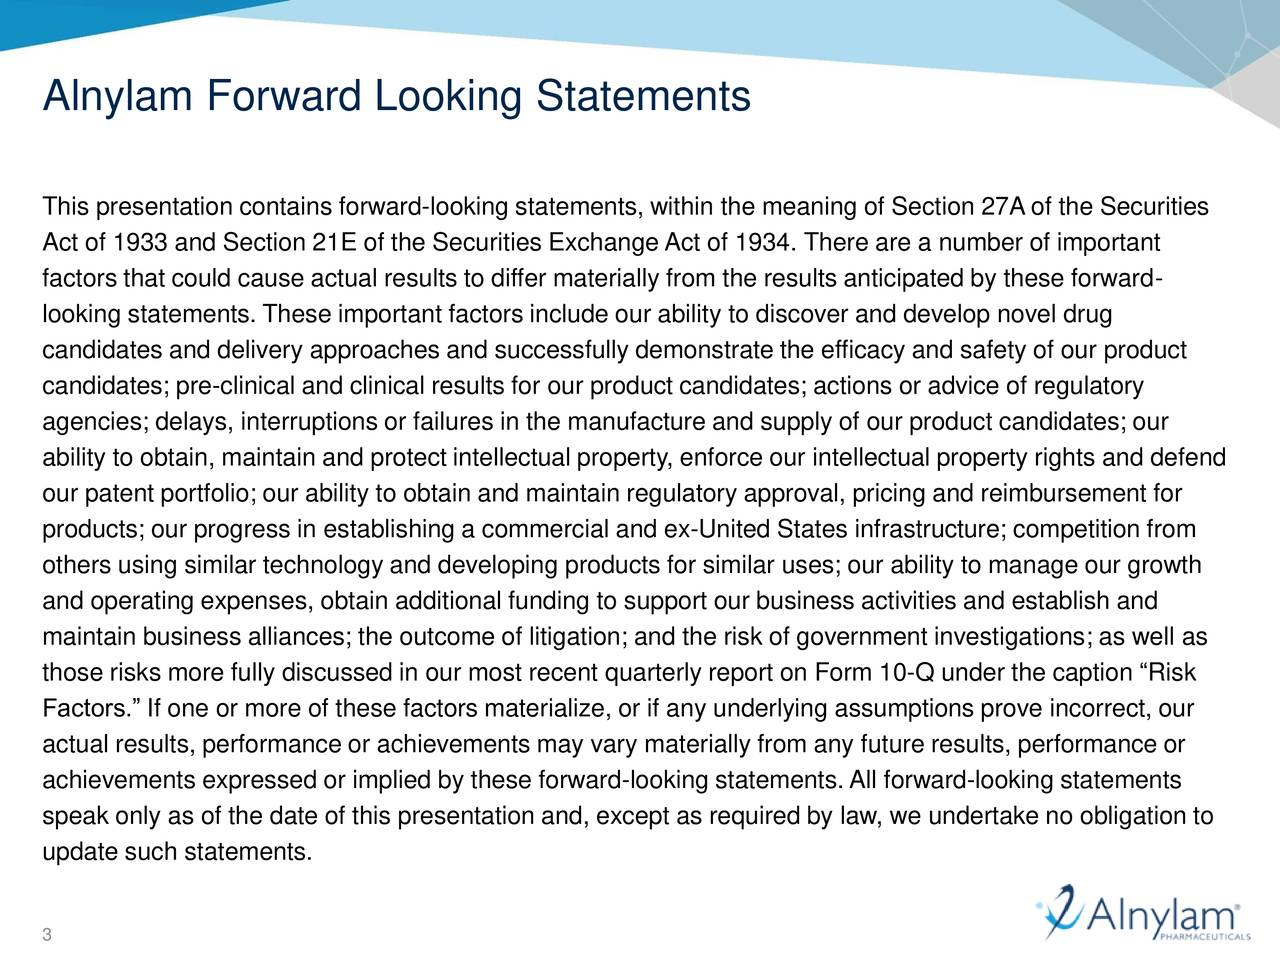 This presentation contains forward-looking statements, within the meaning of Section 27A of the Securities Act of 1933 and Section 21E of the Securities Exchange Act of 1934. There are a number of important factors that could cause actual results to differ materially from the results anticipated by these forward- looking statements. These important factors include our ability to discover and develop novel drug candidates and delivery approaches and successfully demonstrate the efficacy and safety of our product candidates; pre-clinical and clinical results for our product candidates; actions or advice of regulatory agencies; delays, interruptions or failures in the manufacture and supply of our product candidates; our ability to obtain, maintain and protect intellectual property, enforce our intellectual property rights and defend our patent portfolio; our ability to obtain and maintain regulatory approval, pricing and reimbursement for products; our progress in establishing a commercial and ex-United States infrastructure; competition from others using similar technology and developing products for similar uses; our ability to manage our growth and operating expenses, obtain additional funding to support our business activities and establish and maintain business alliances; the outcome of litigation; and the risk of government investigations; as well as those risks more fully discussed in our most recent quarterly report on Form 10-Q under the caption Risk Factors. If one or more of these factors materialize, or if any underlying assumptions prove incorrect, our actual results, performance or achievements may vary materially from any future results, performance or achievements expressed or implied by these forward-looking statements.All forward-looking statements speak only as of the date of this presentation and, except as required by law, we undertake no obligation to update such statements. 3